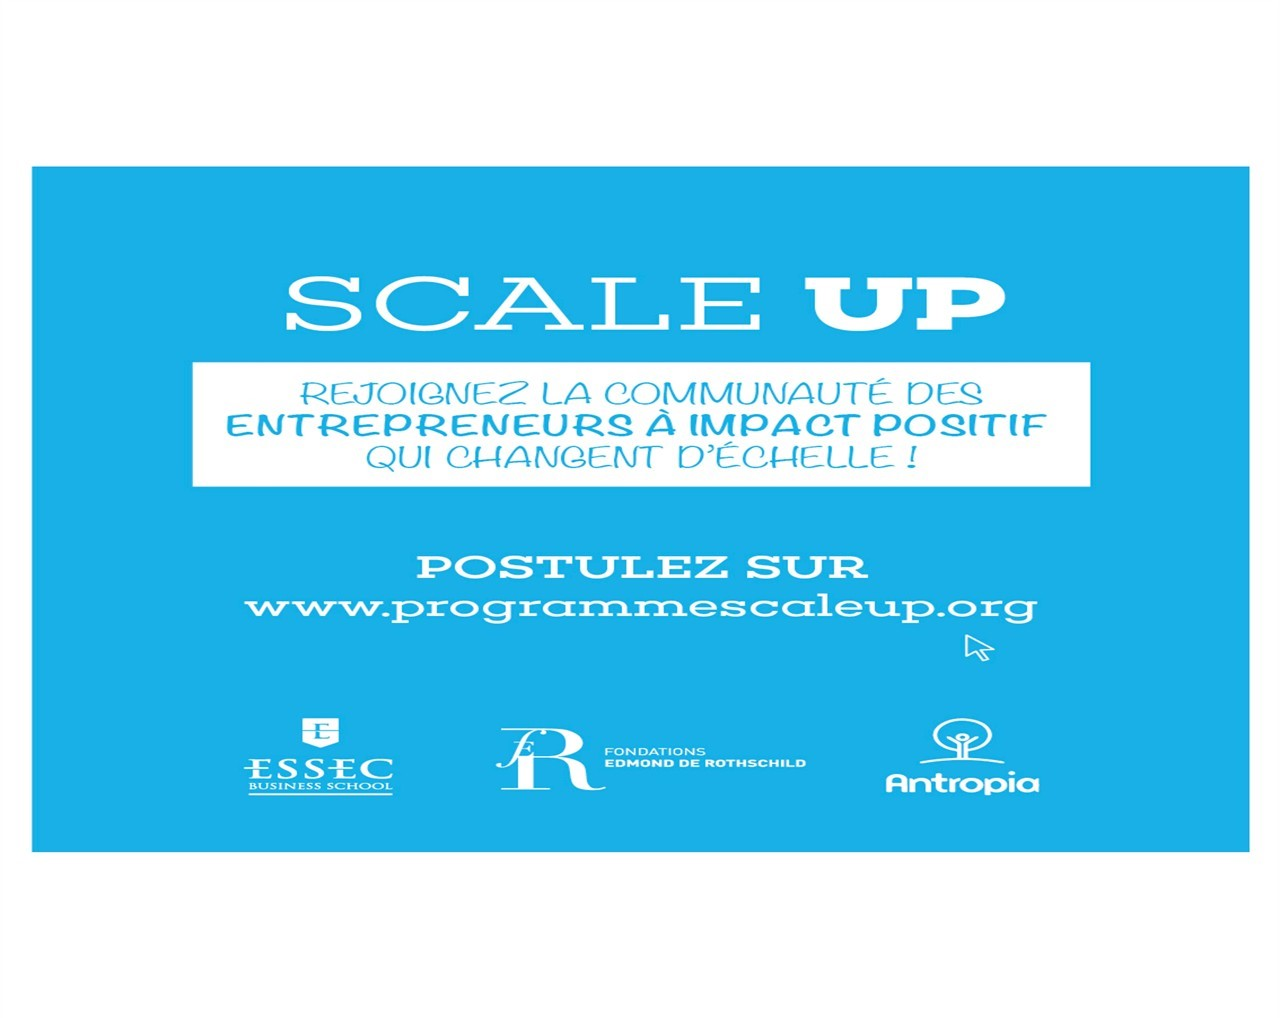 Apply to Scale Up 2016!